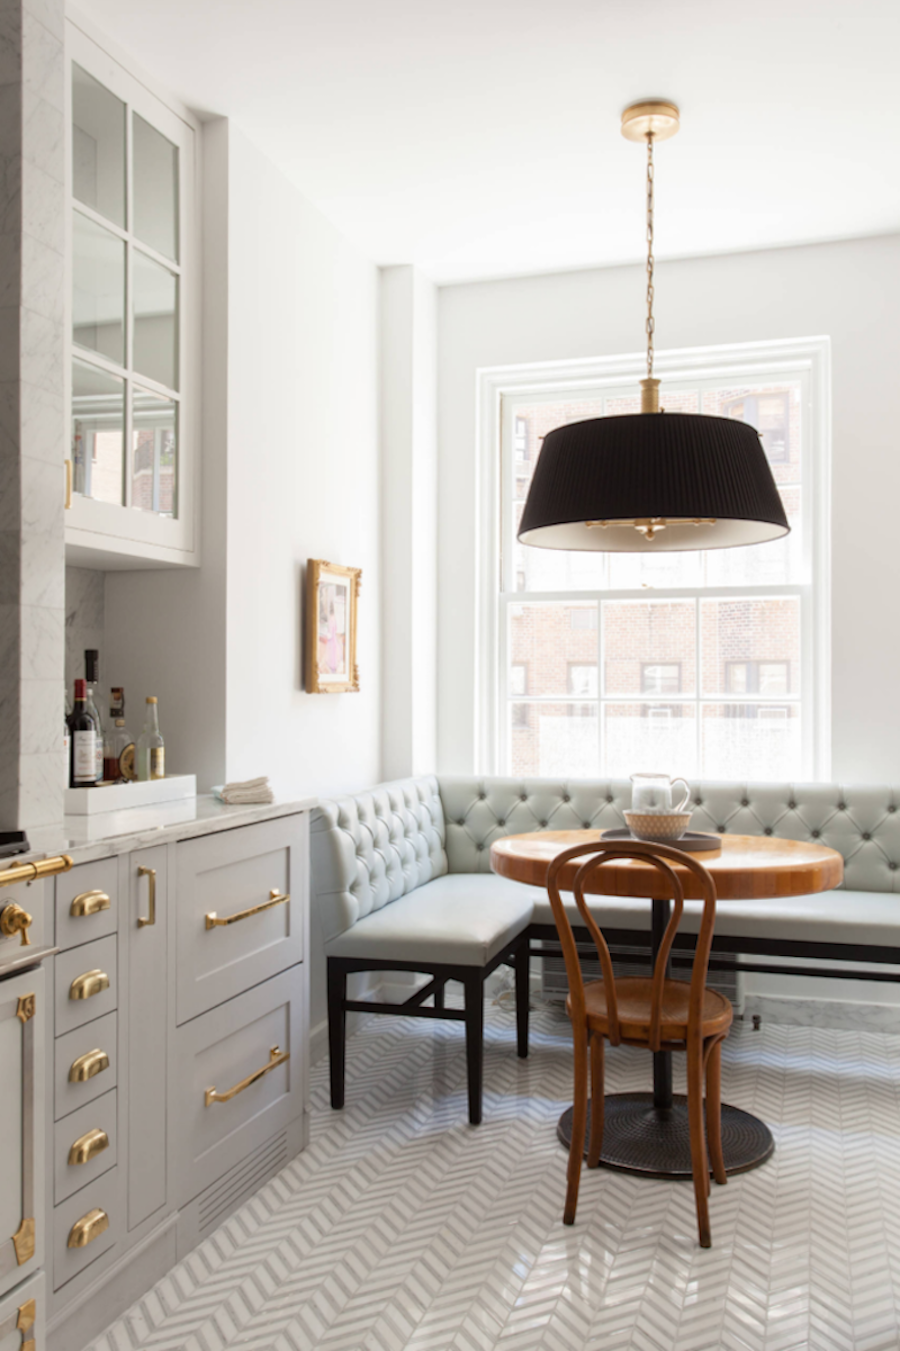 Gray banquette channeling the look of a serene cafe